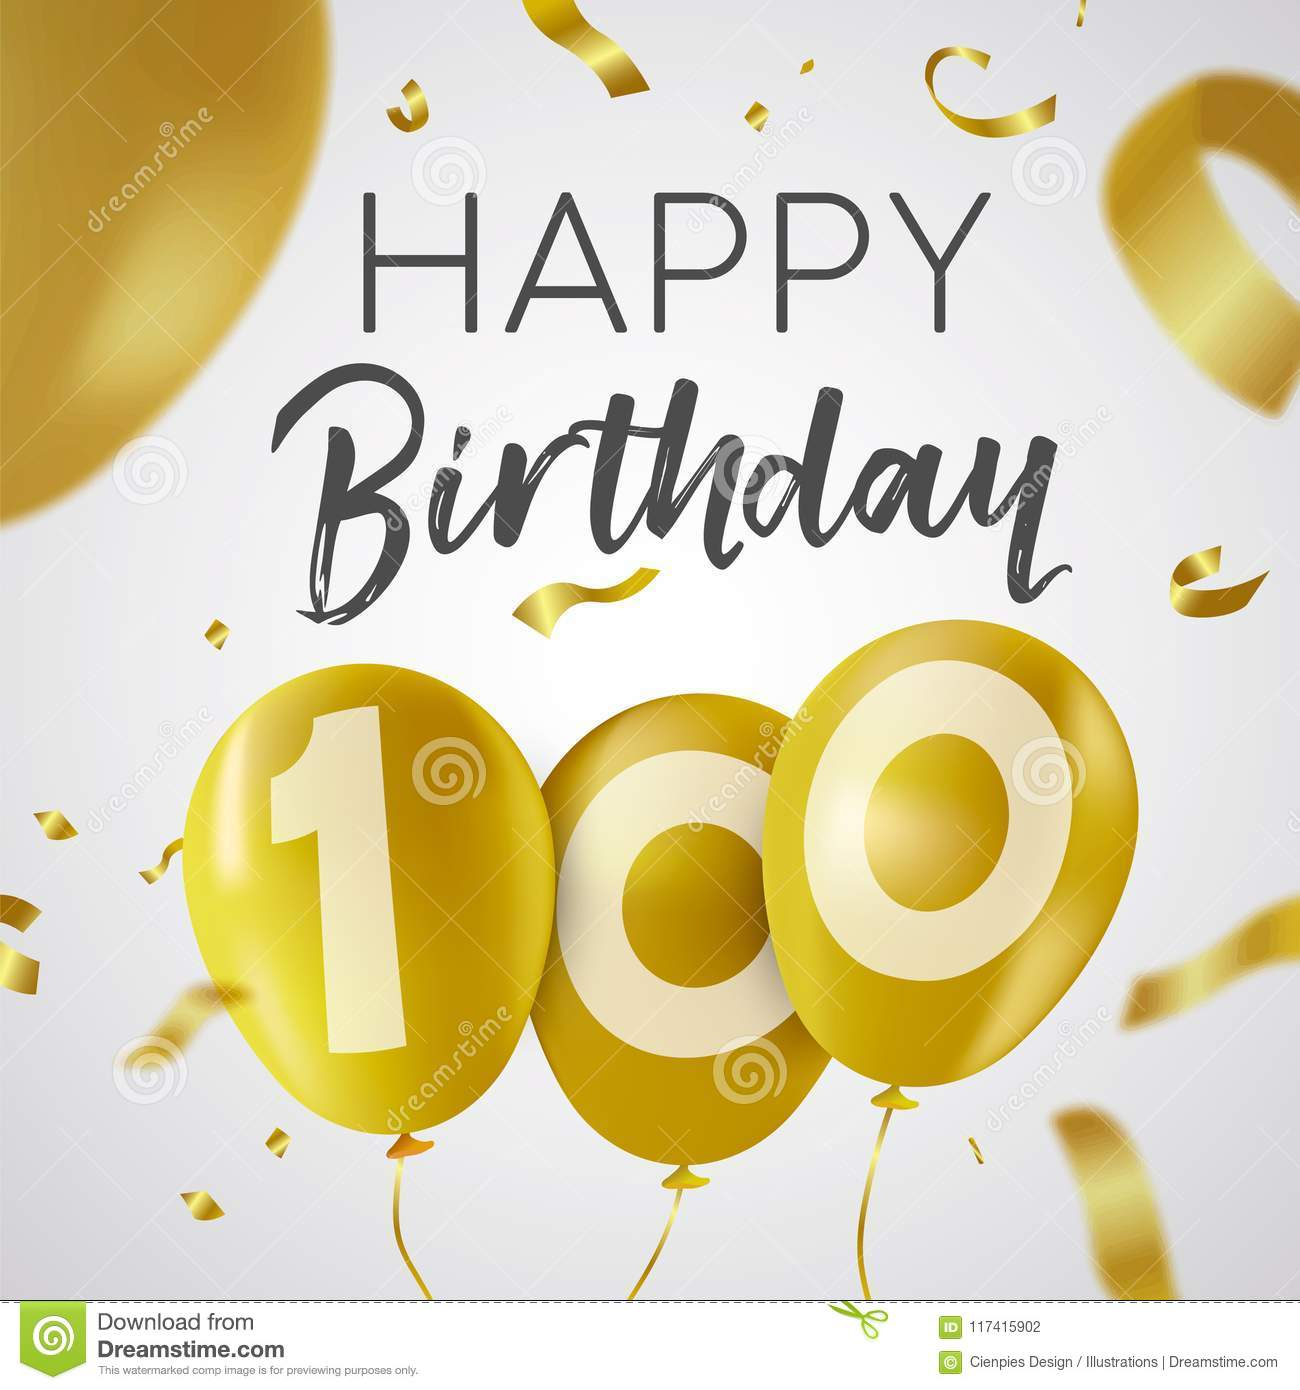 Happy Birthday 100 One Hundred Years Luxury Design With Gold Balloon Number And Golden Confetti Decoration Ideal For Party Invitation Or Greeting Card